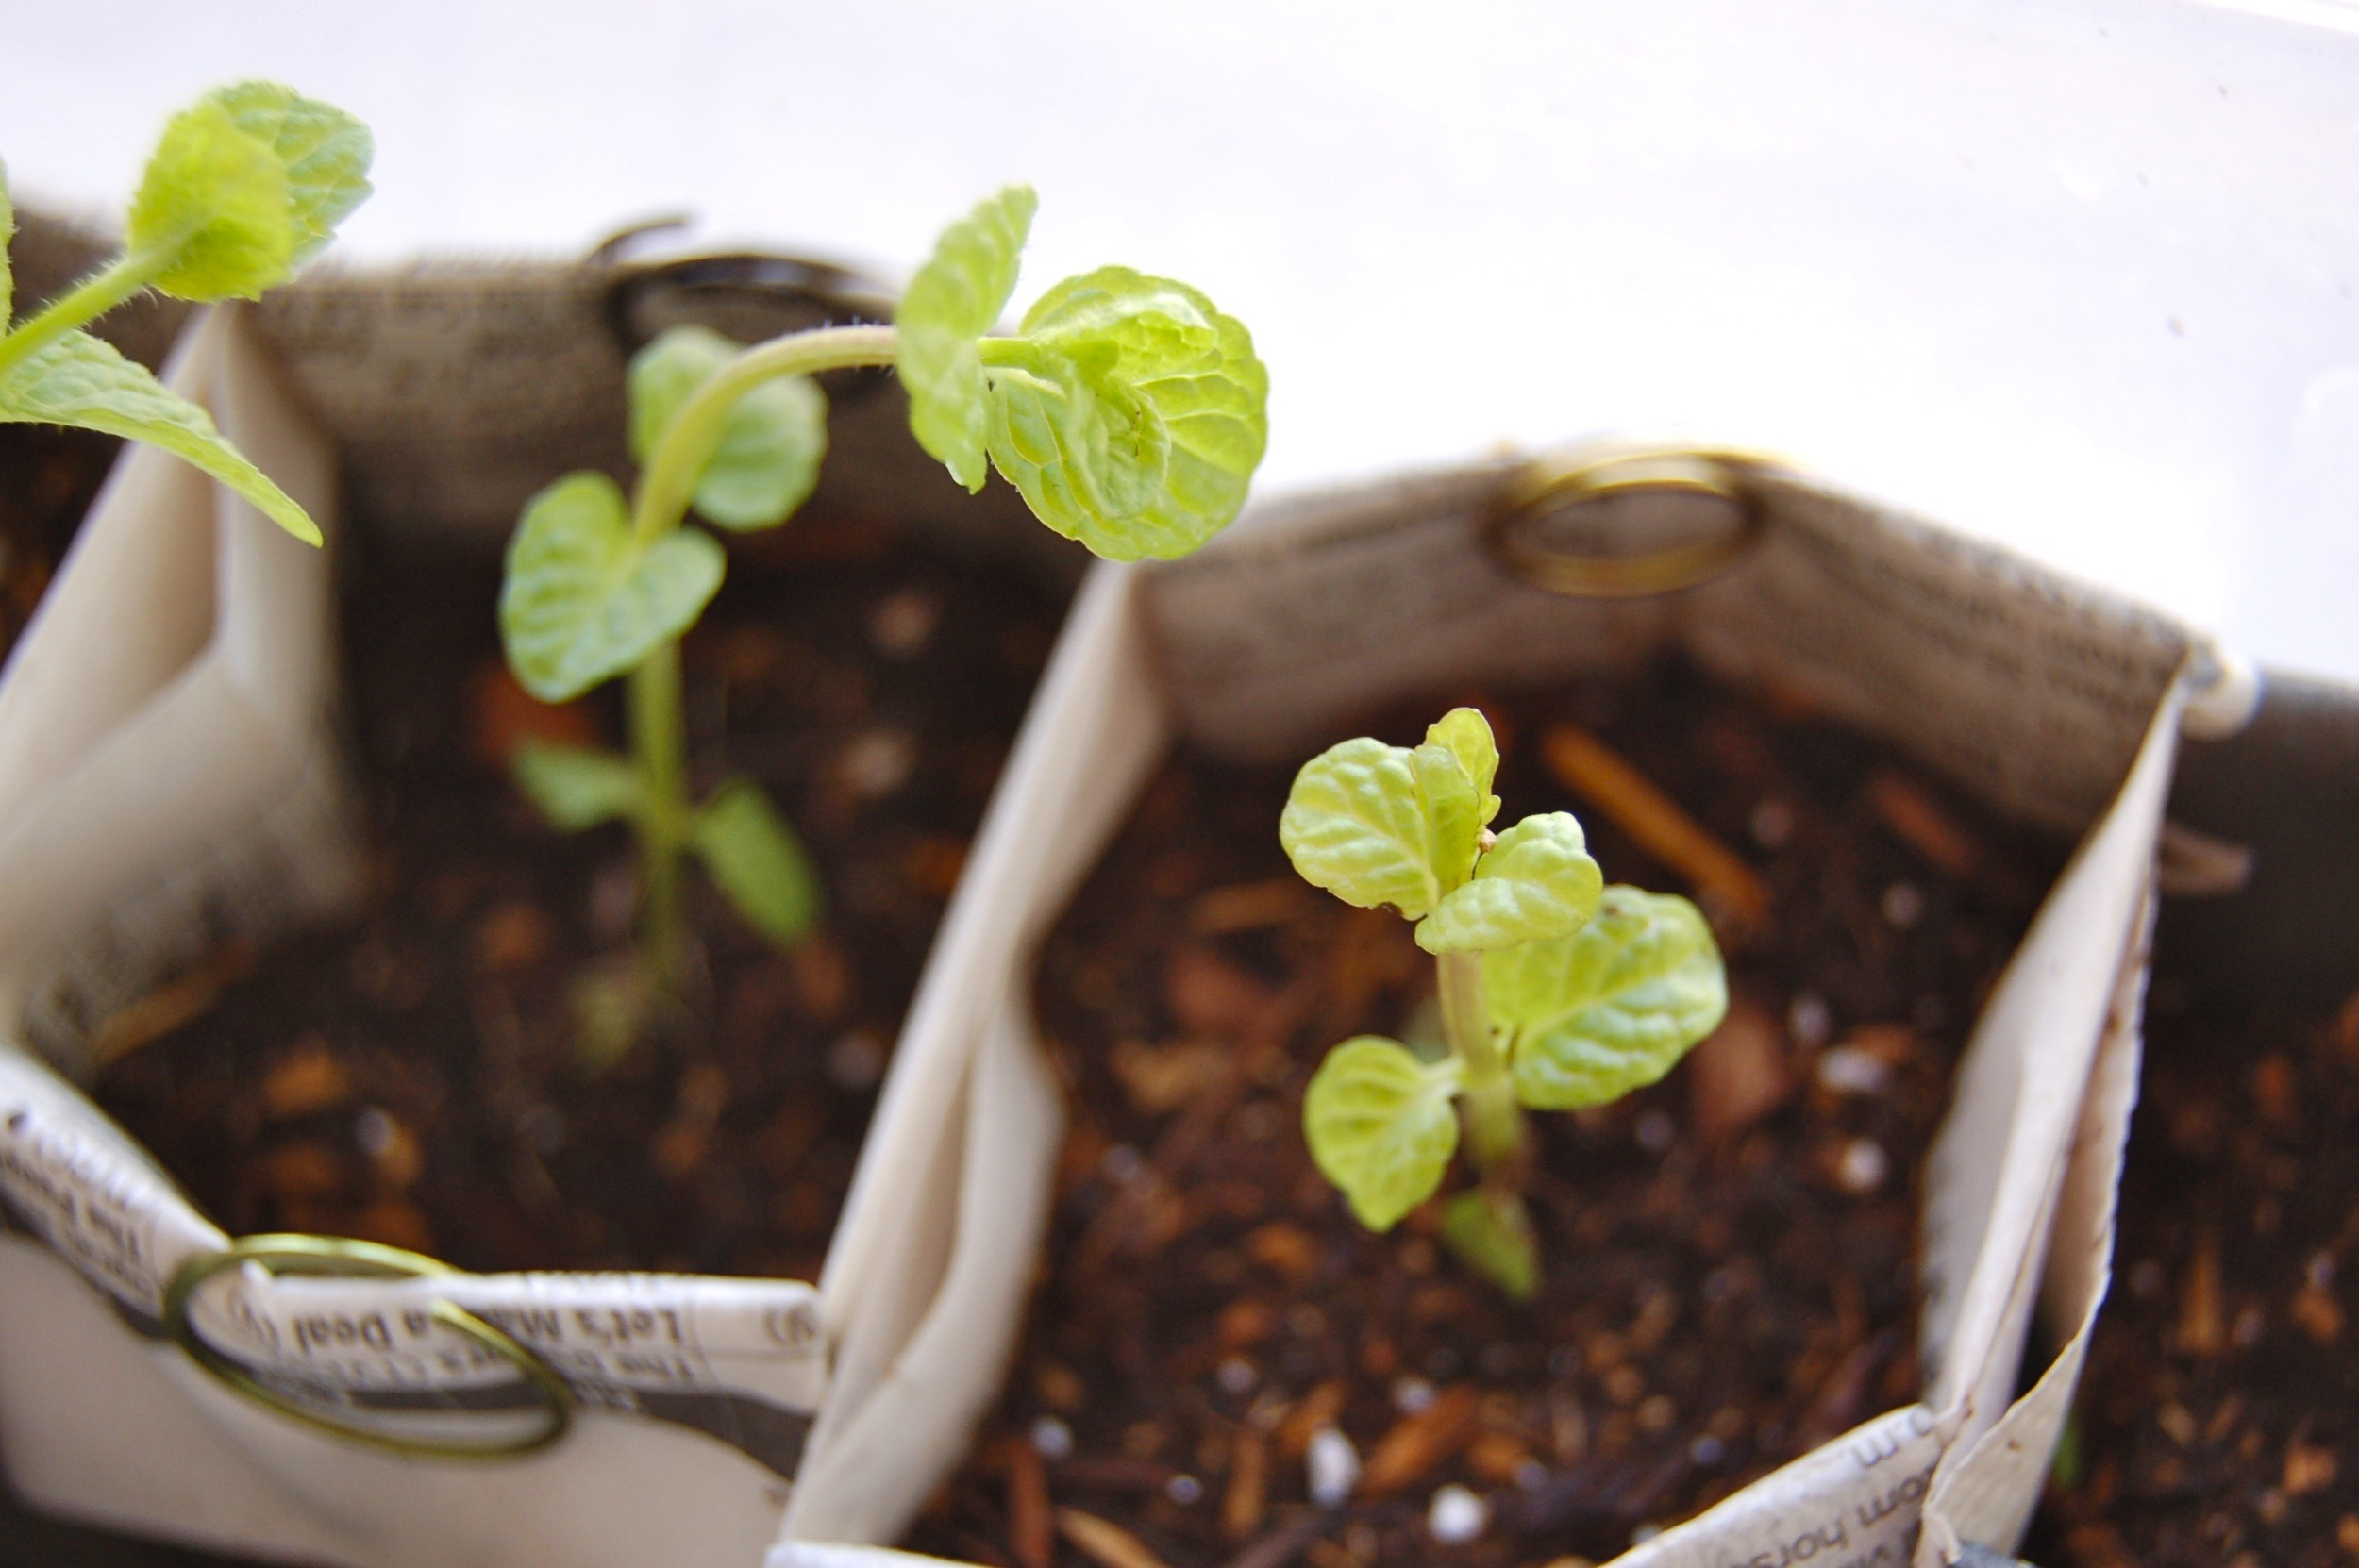 Happy Peppermint seedlings chatting it up!